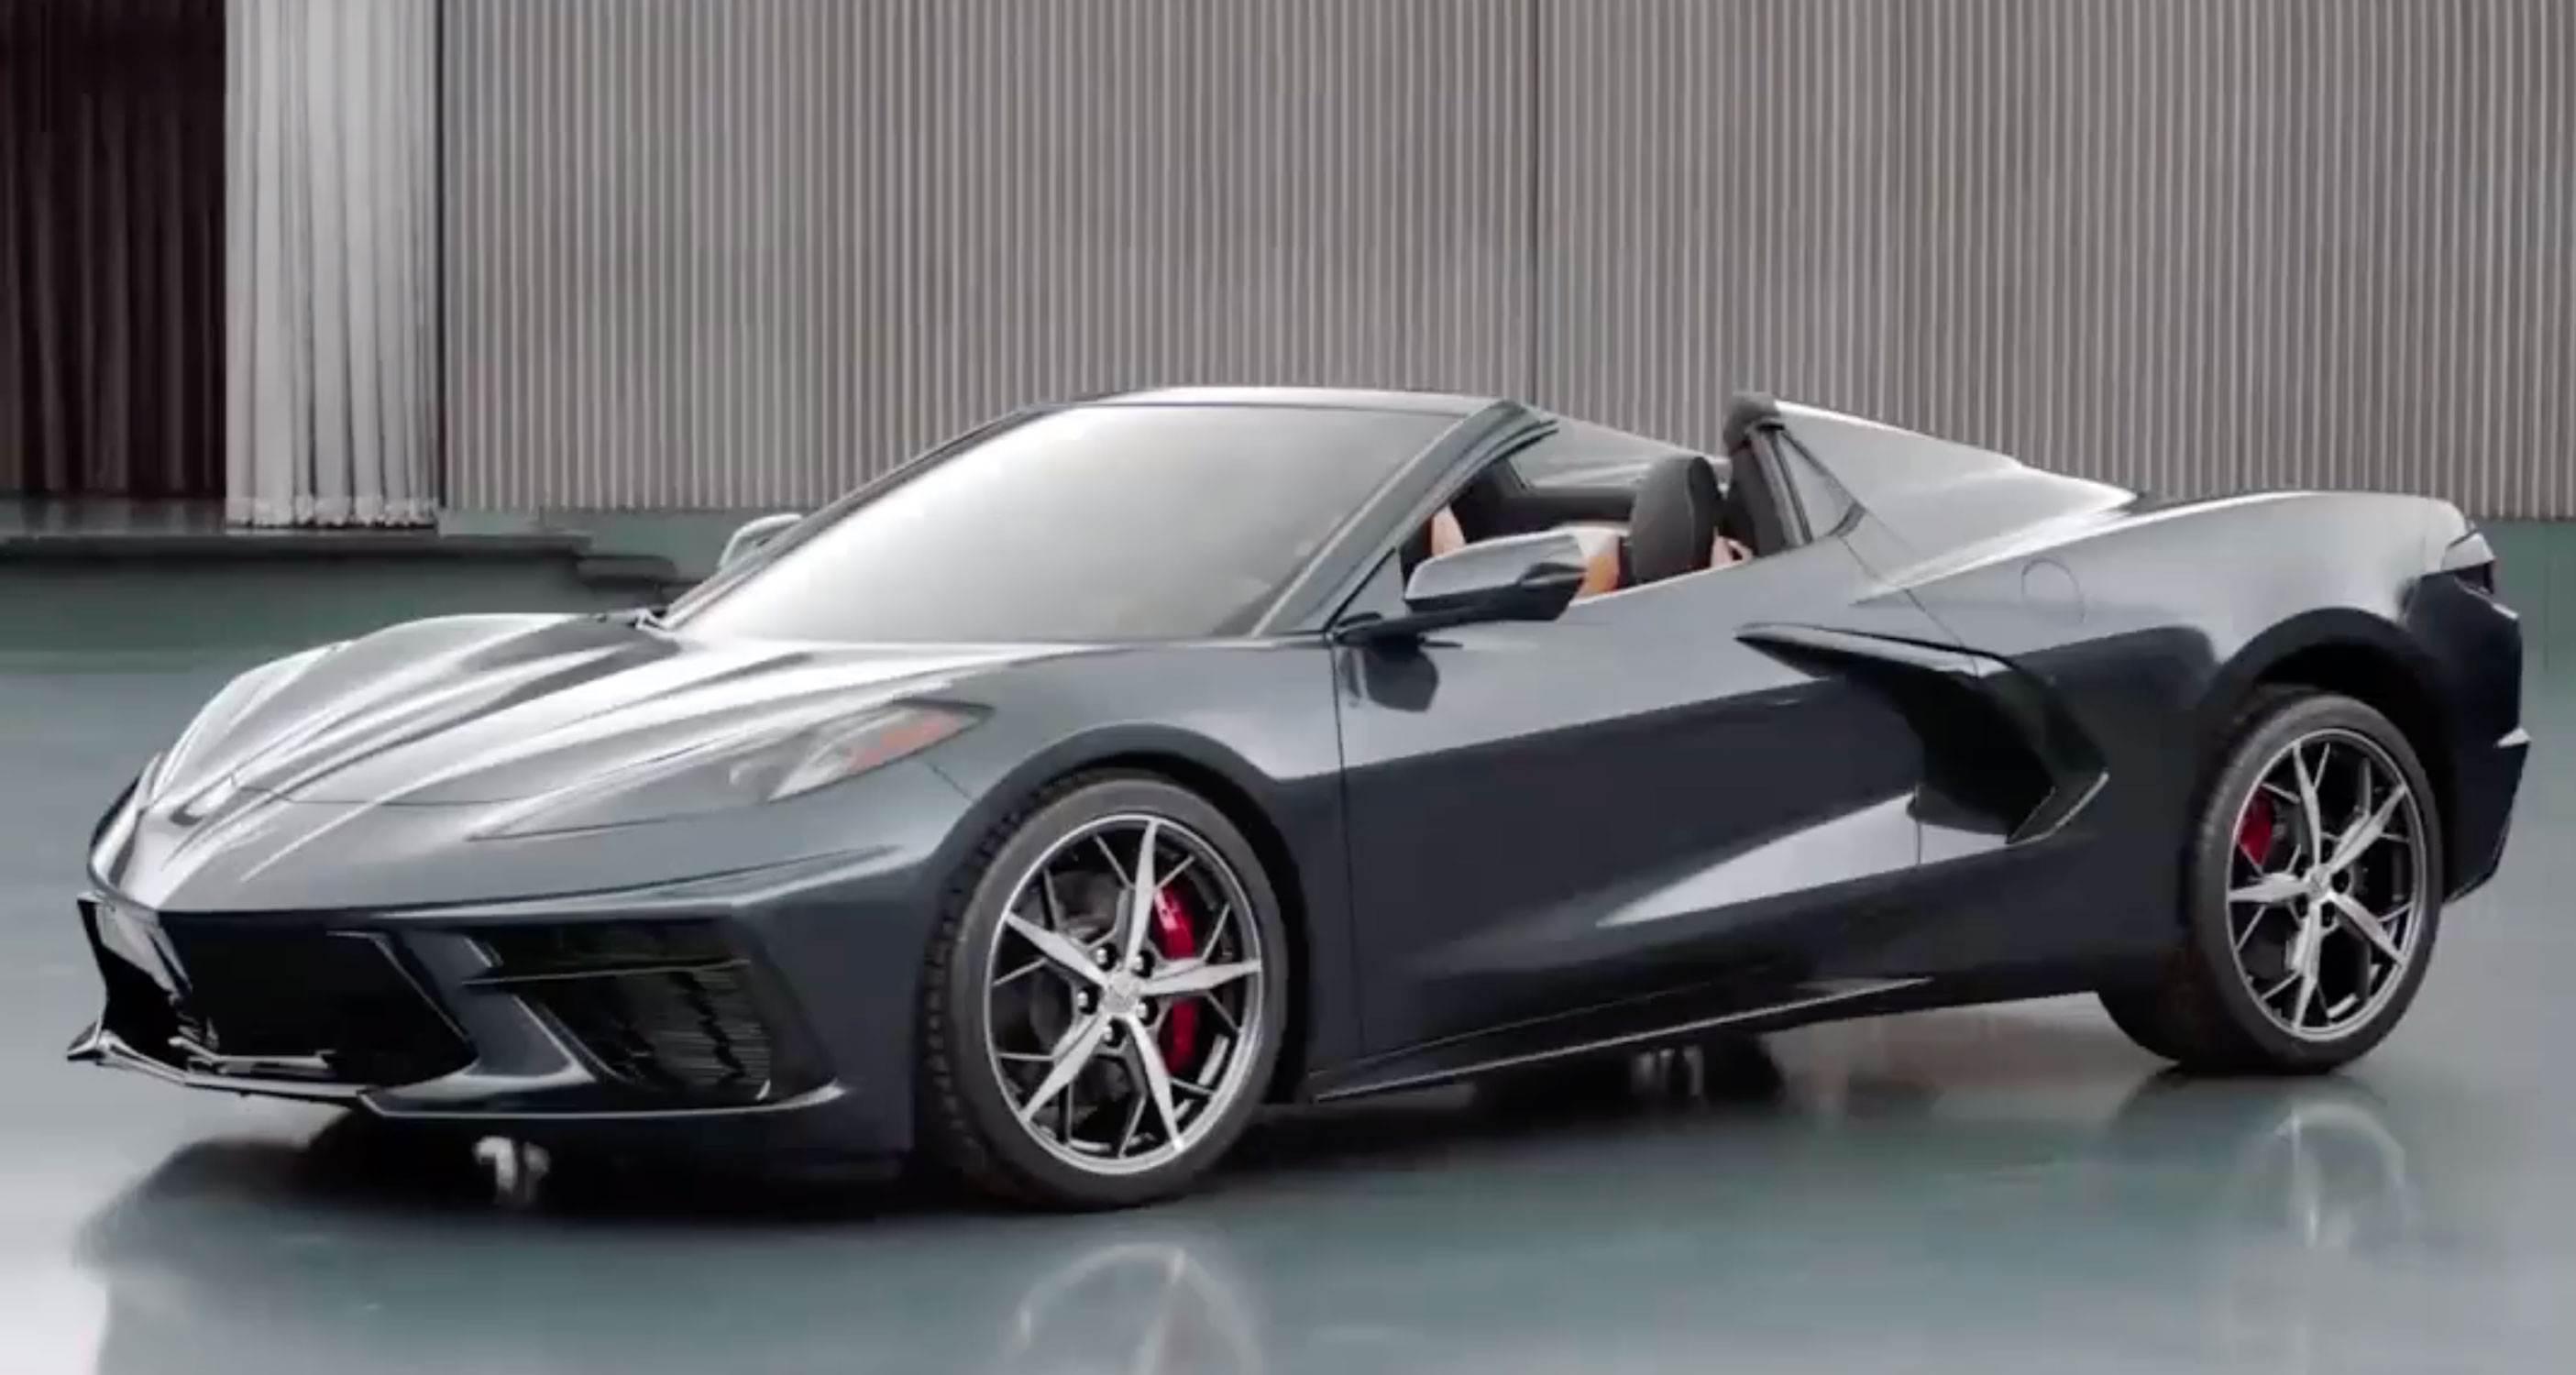 Chevrolet teases Corvette Stingray convertible thumbnail